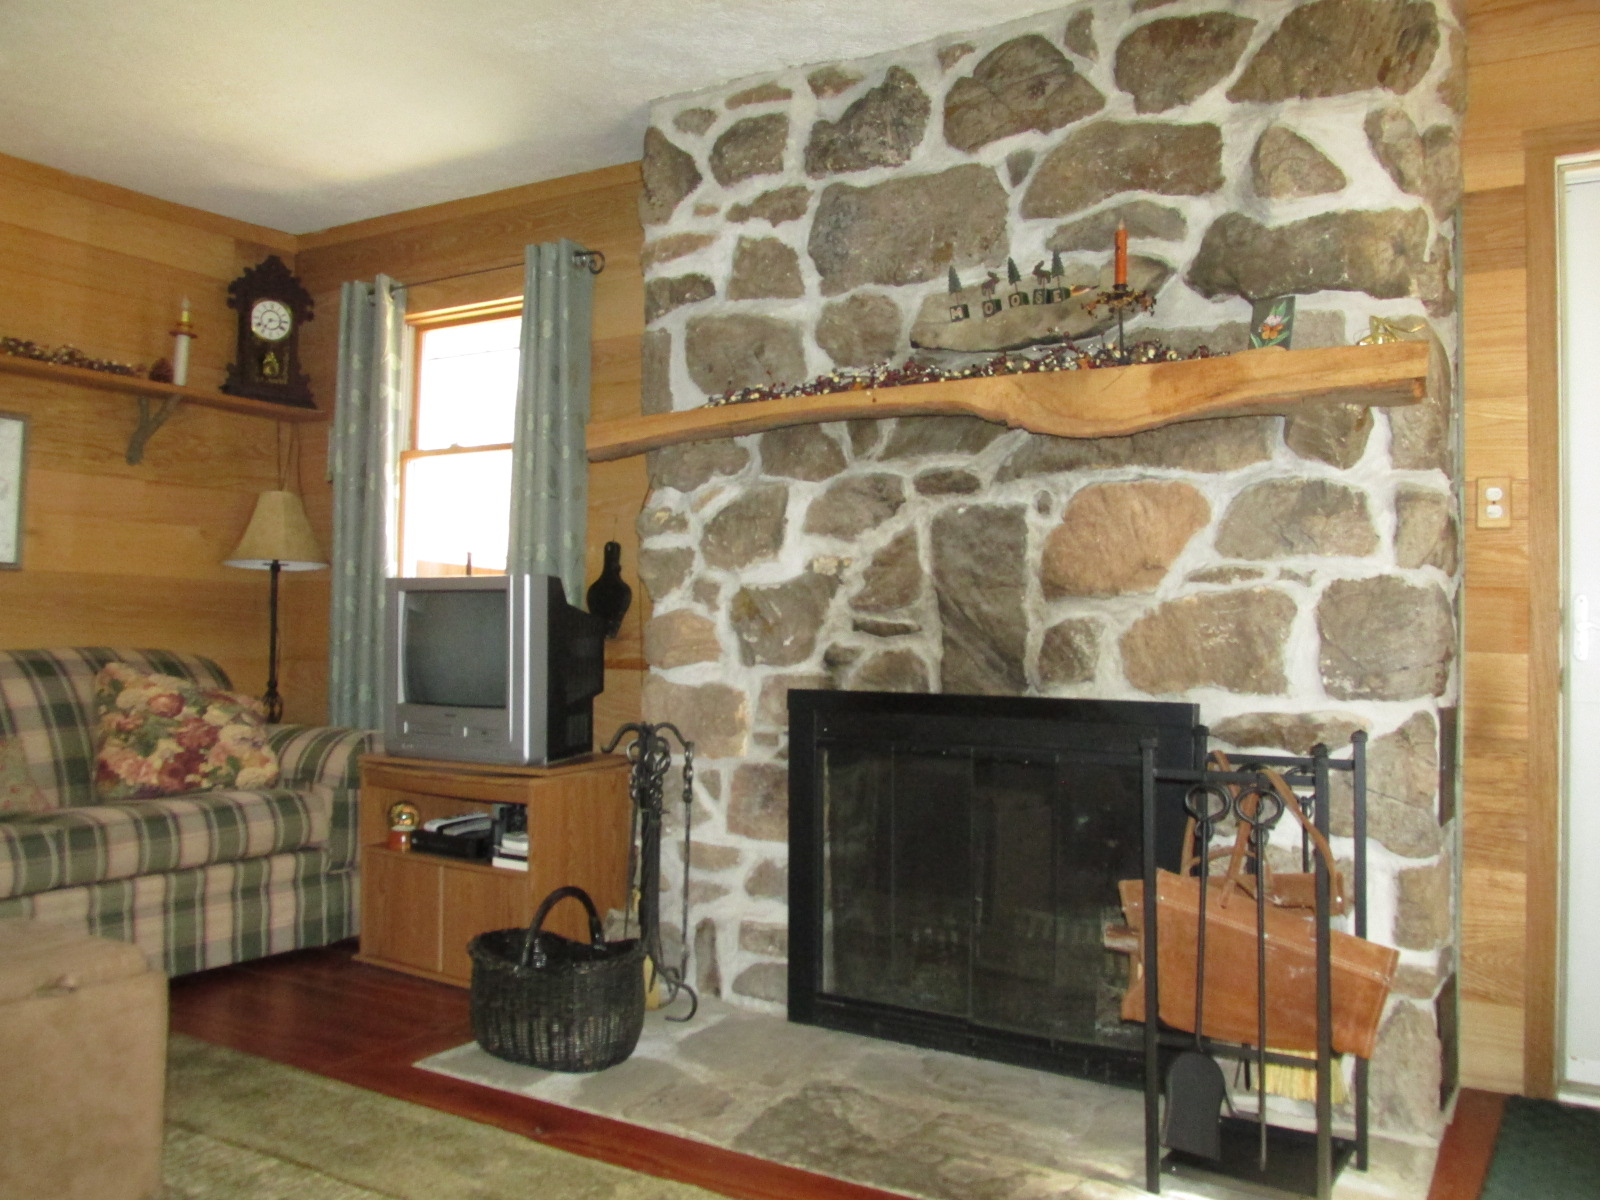 440 w laurel lane king mountain pa 15557 u2014 laurel highlands living